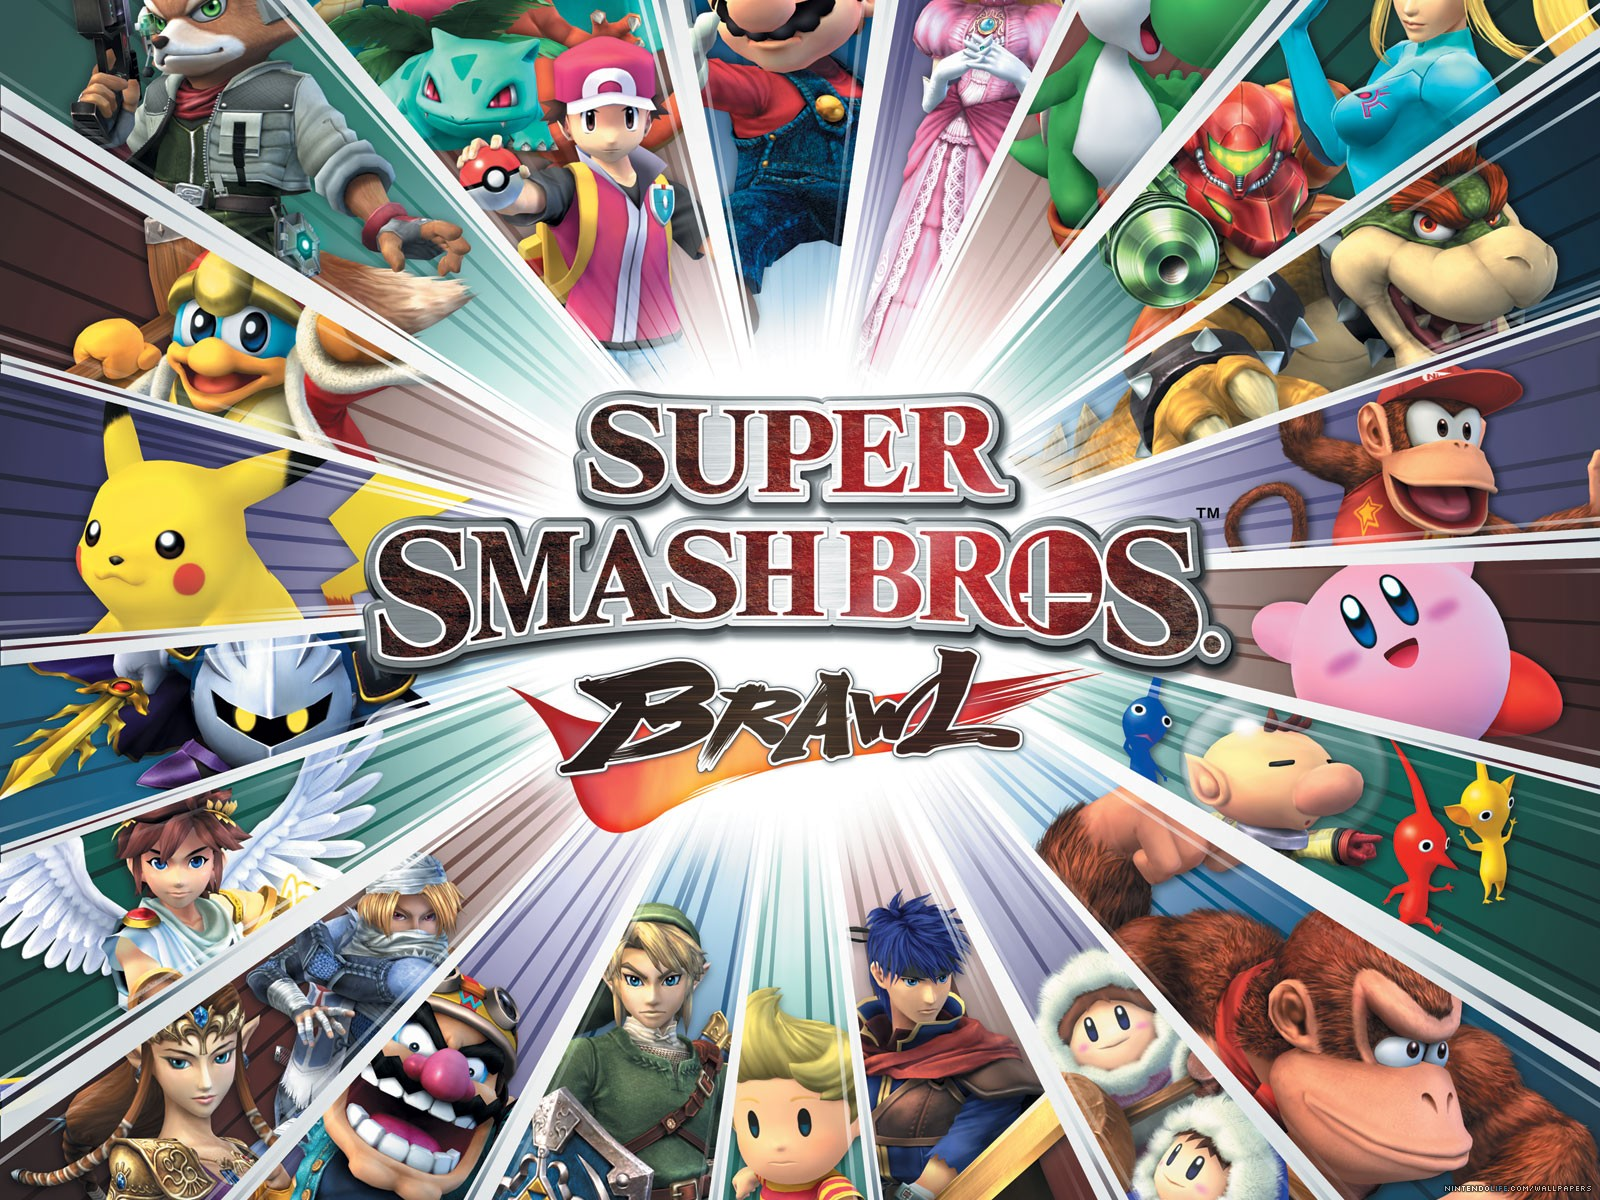 Brawl Wallpapers-1 Super Smash Bros.